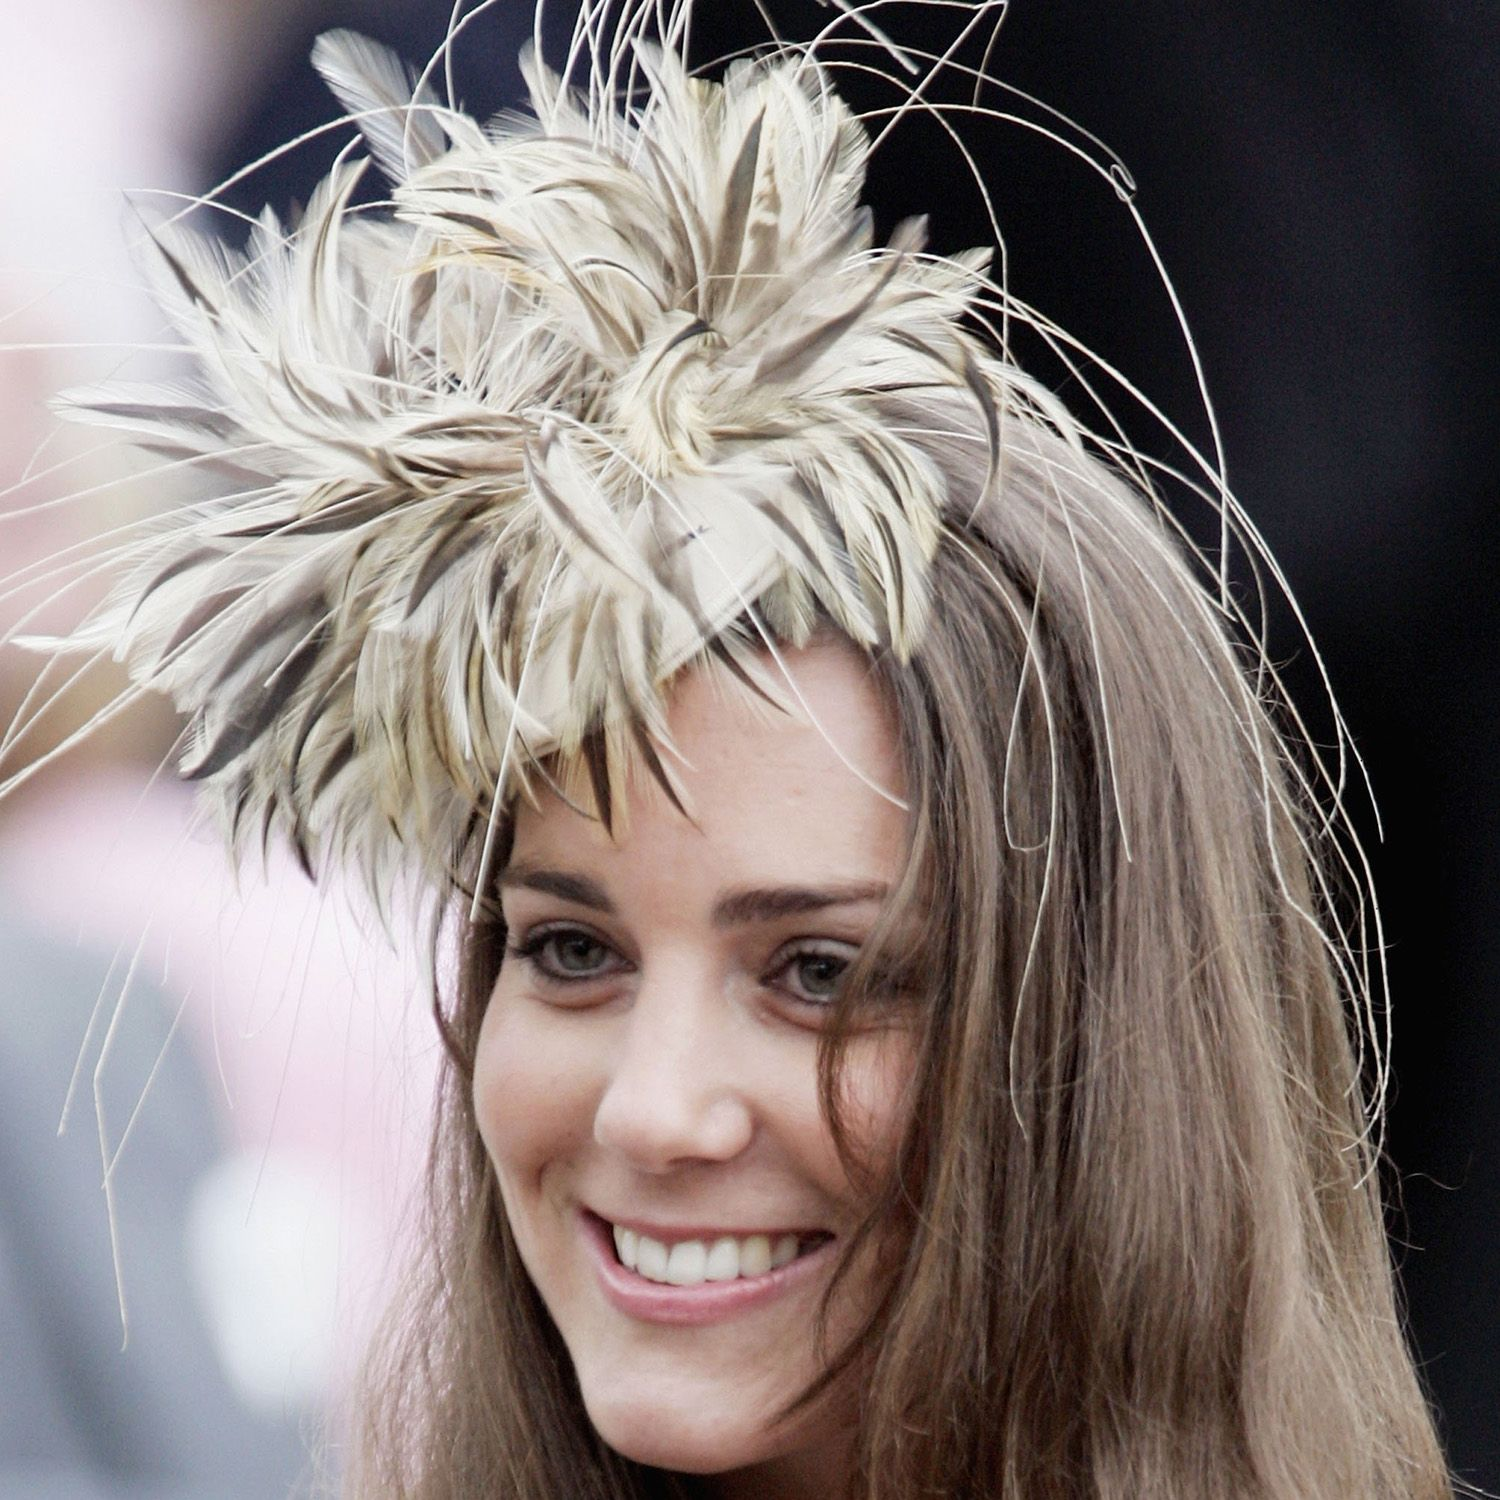 WILTSHIRE, ENGLAND - MAY 6: Kate Middleton, girlfriend of Prince Willliam, smiles at the marriage of Laura Parker-Bowles and Harry Lopes at St CyriacOs Church, Lacock, on May 6, 2006 in Wiltshire, England. (Photo by Tim Graham/Getty Images)